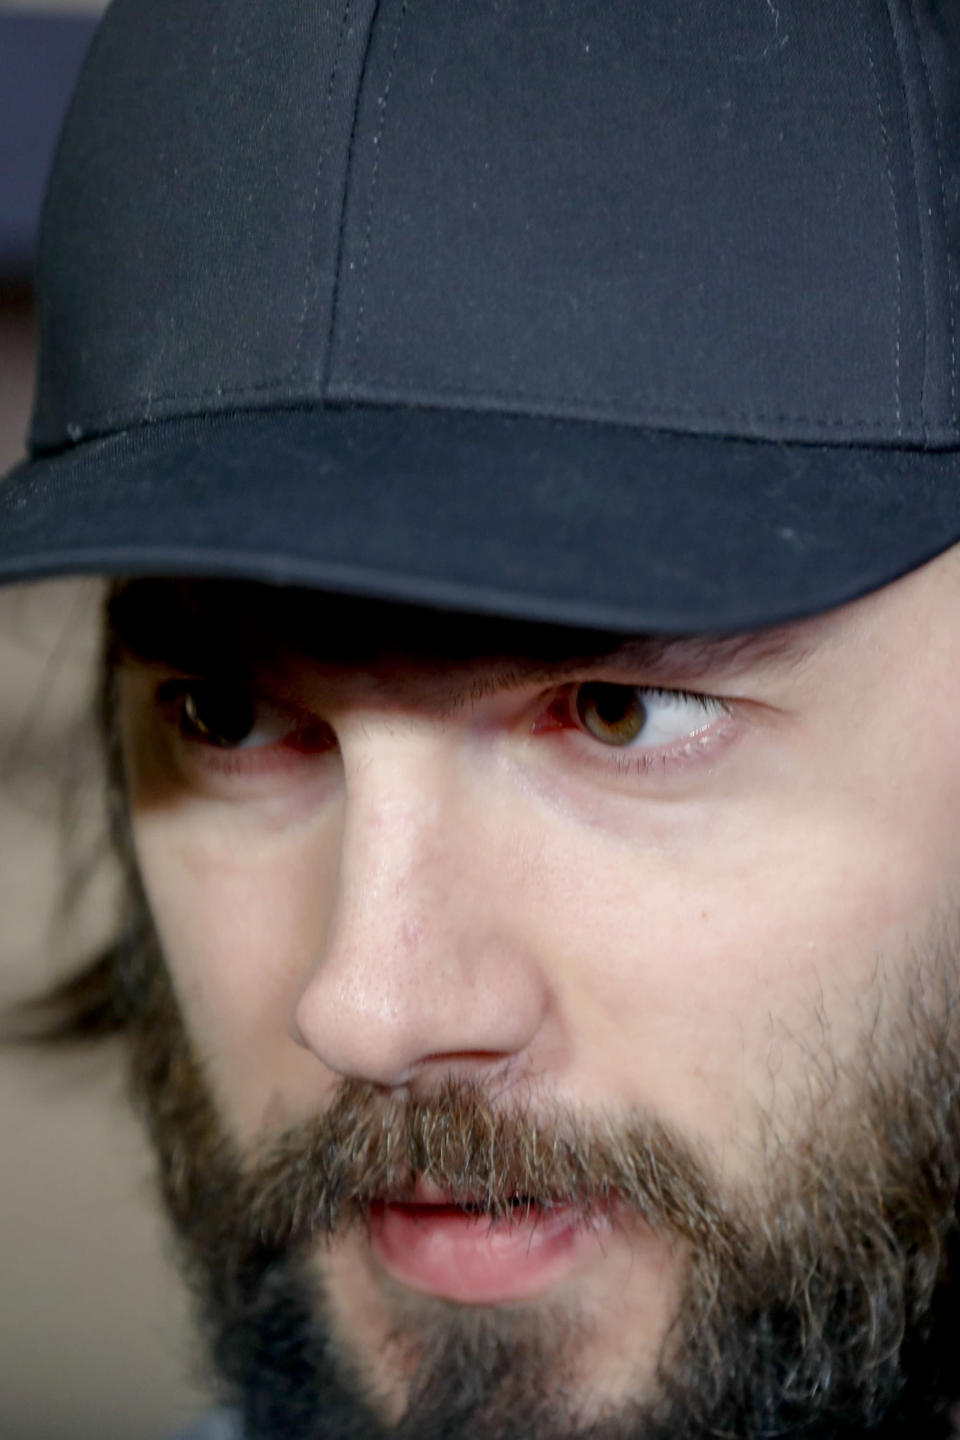 Pittsburgh Penguins' Kris Letang talks with reporters in the practice facility locker room before leaving for the off season two days after being swept by the New York Islanders in the first round of the NHL hockey playoffs, Thursday, April 18, 2019, at their practice facility in Cranberry Township, Pa. (AP Photo/Keith Srakocic)